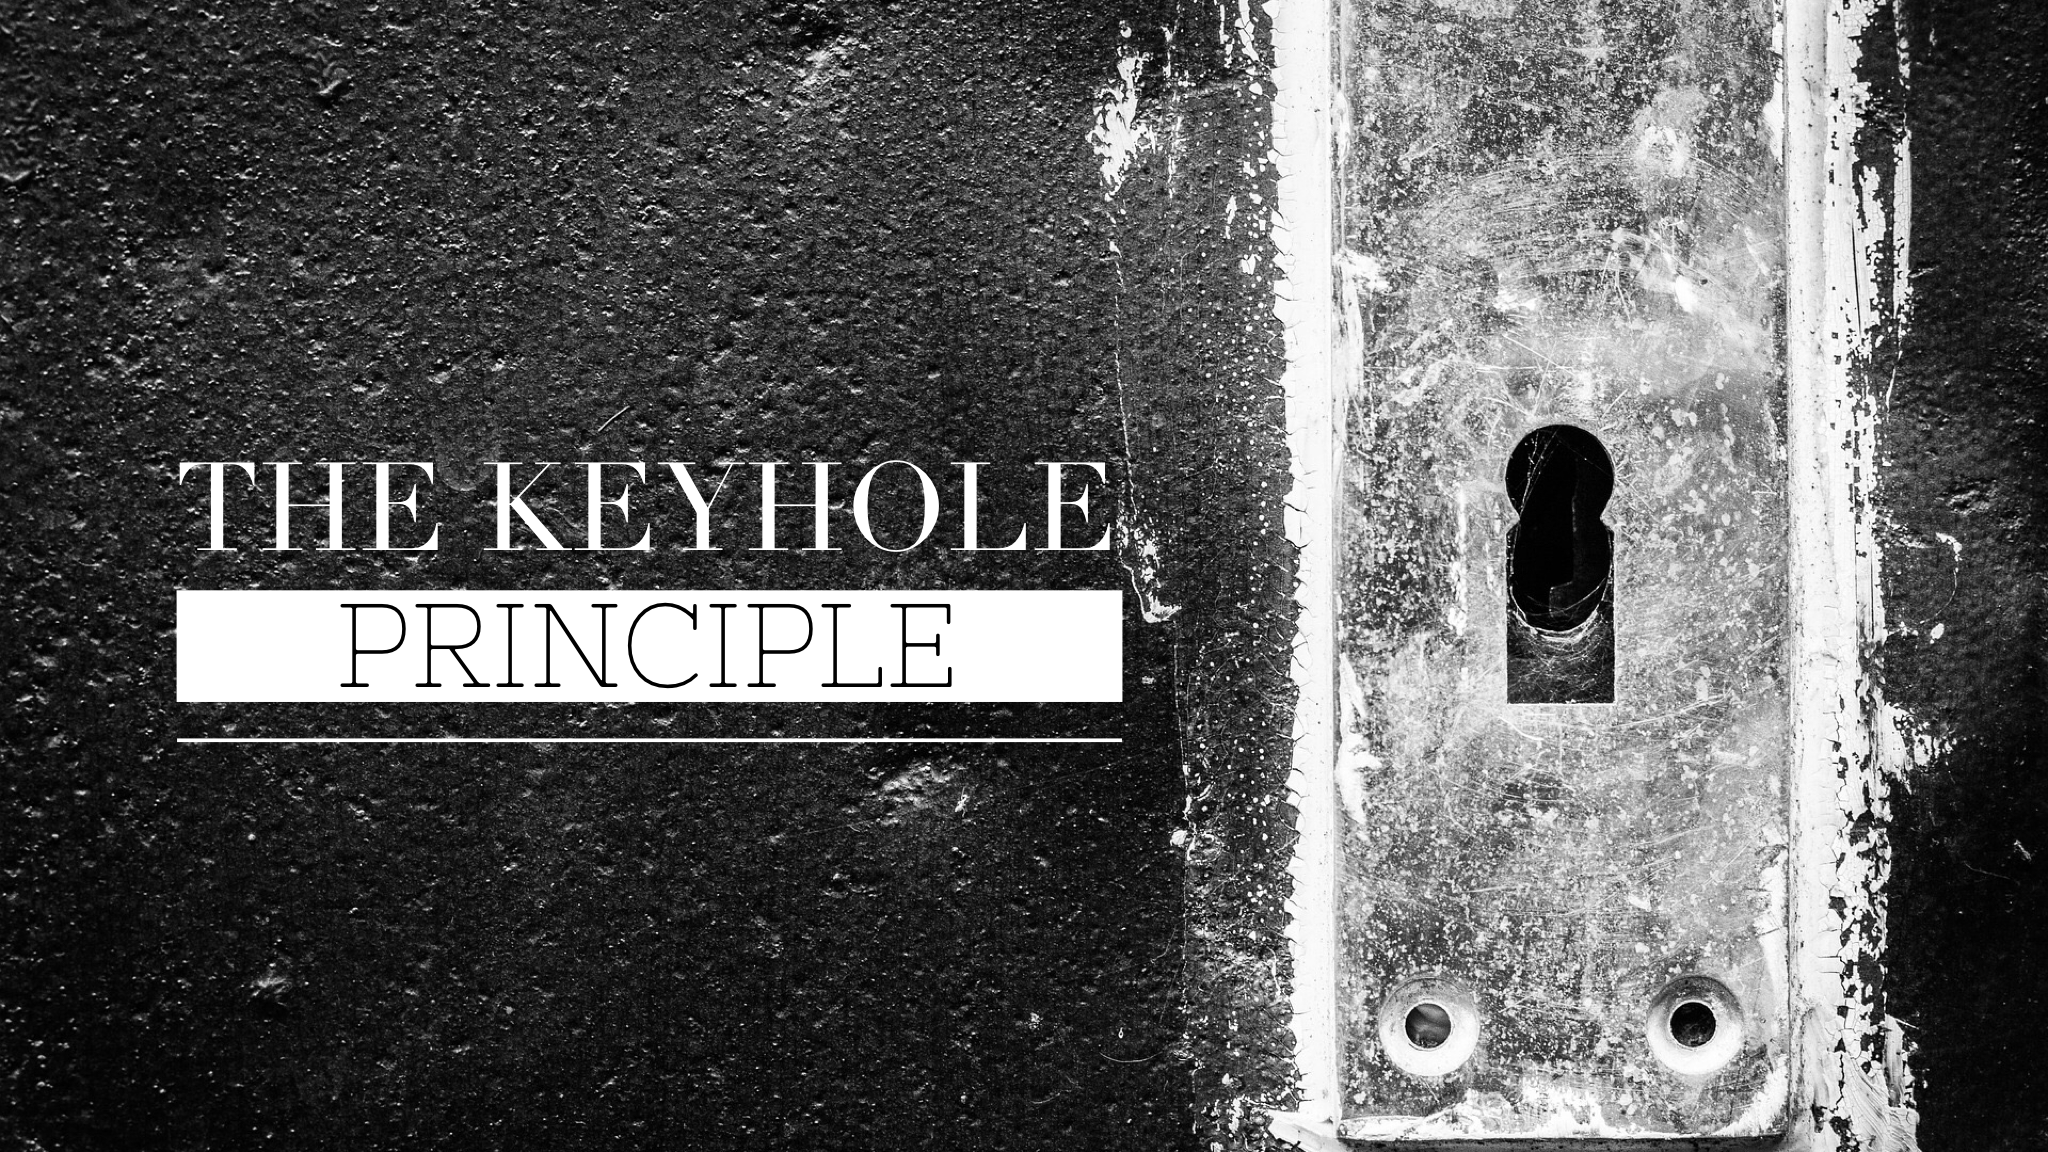 Black & white image of a wall with an antique keyhole plate.